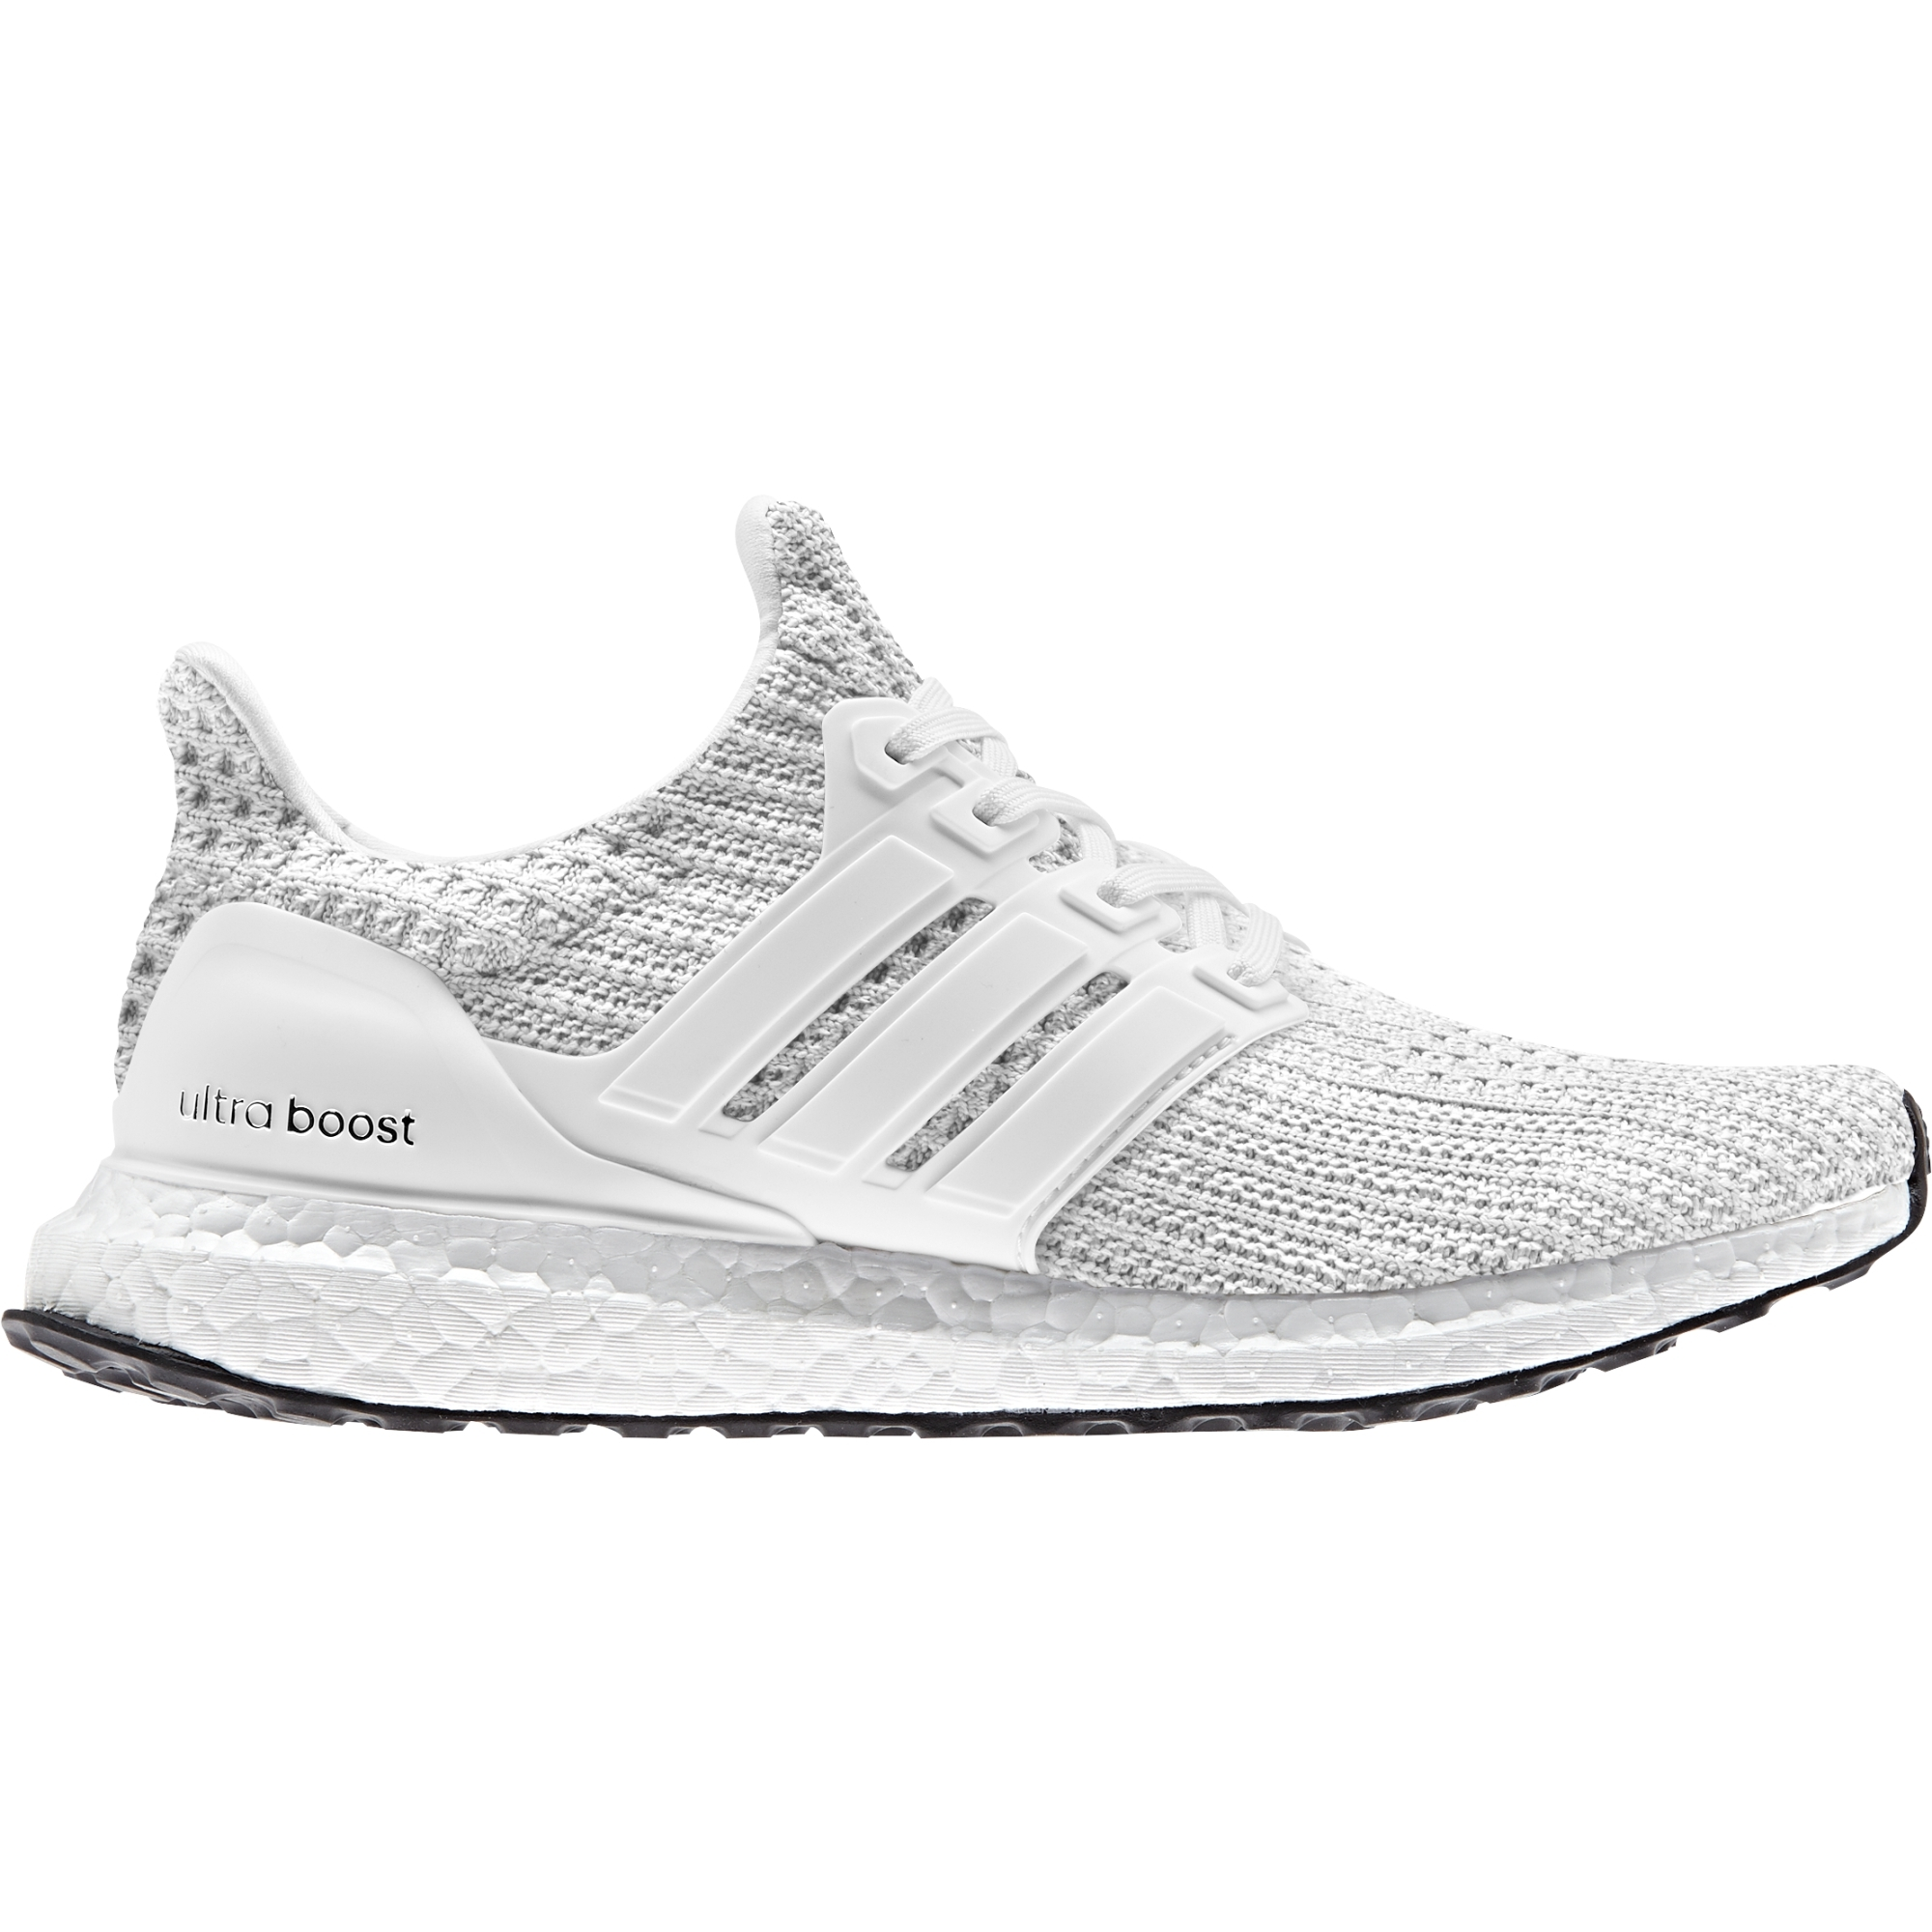 new style 62542 8d4ab adidas Women's Ultra Boost Shoes